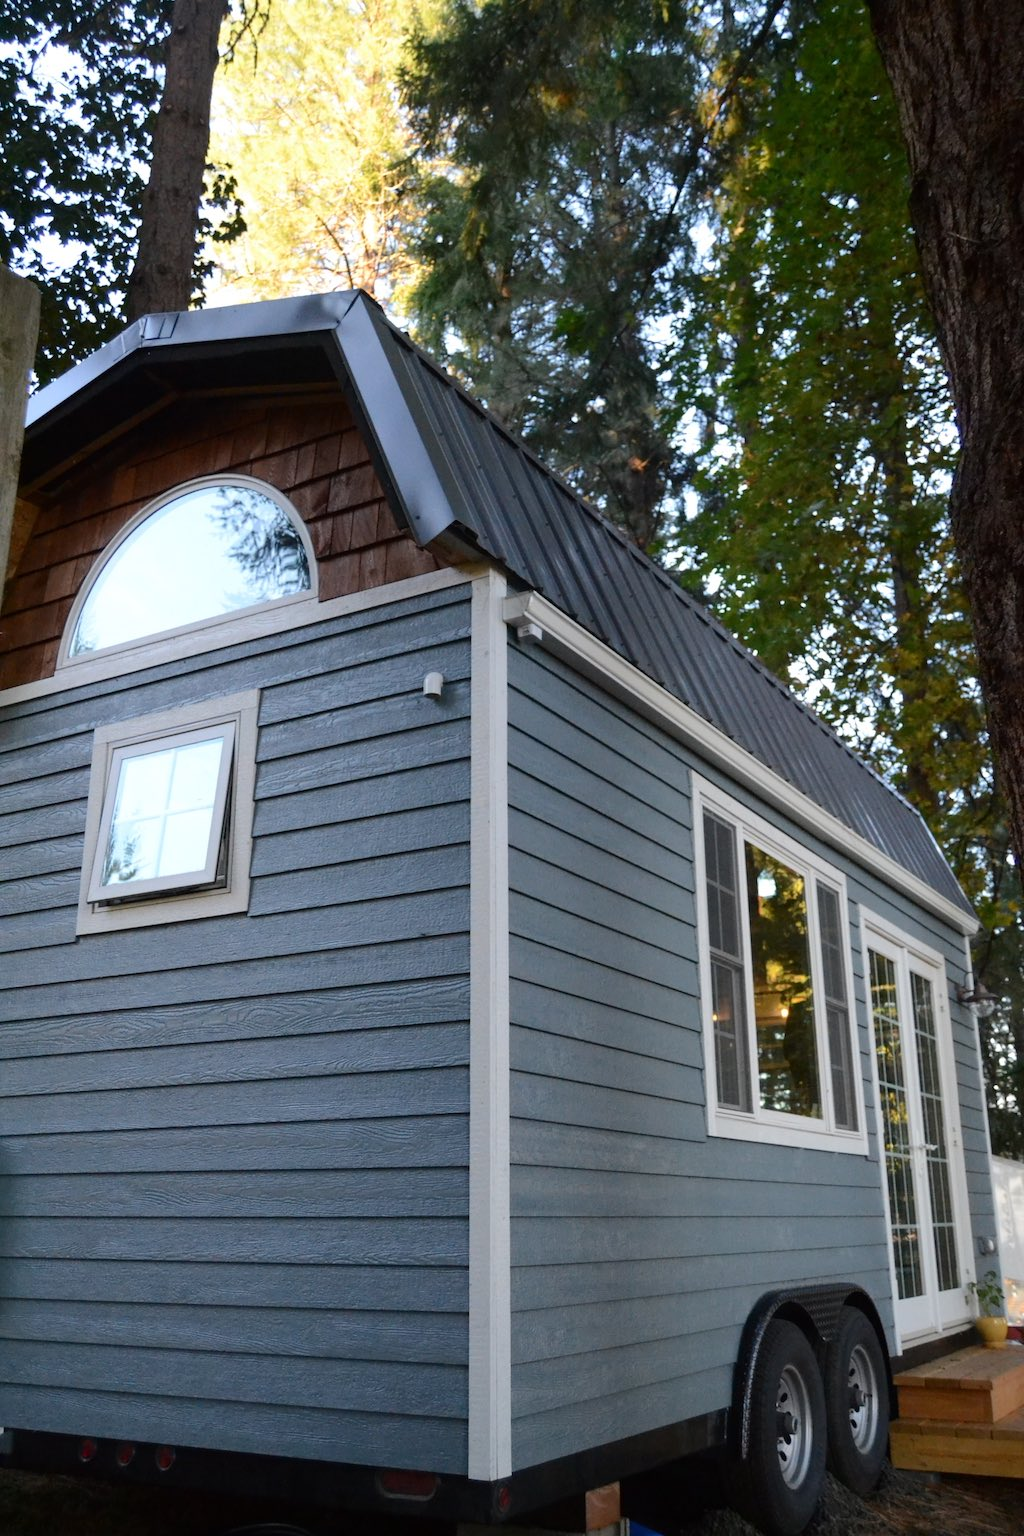 tiny-house-for-a-bigger-life-9